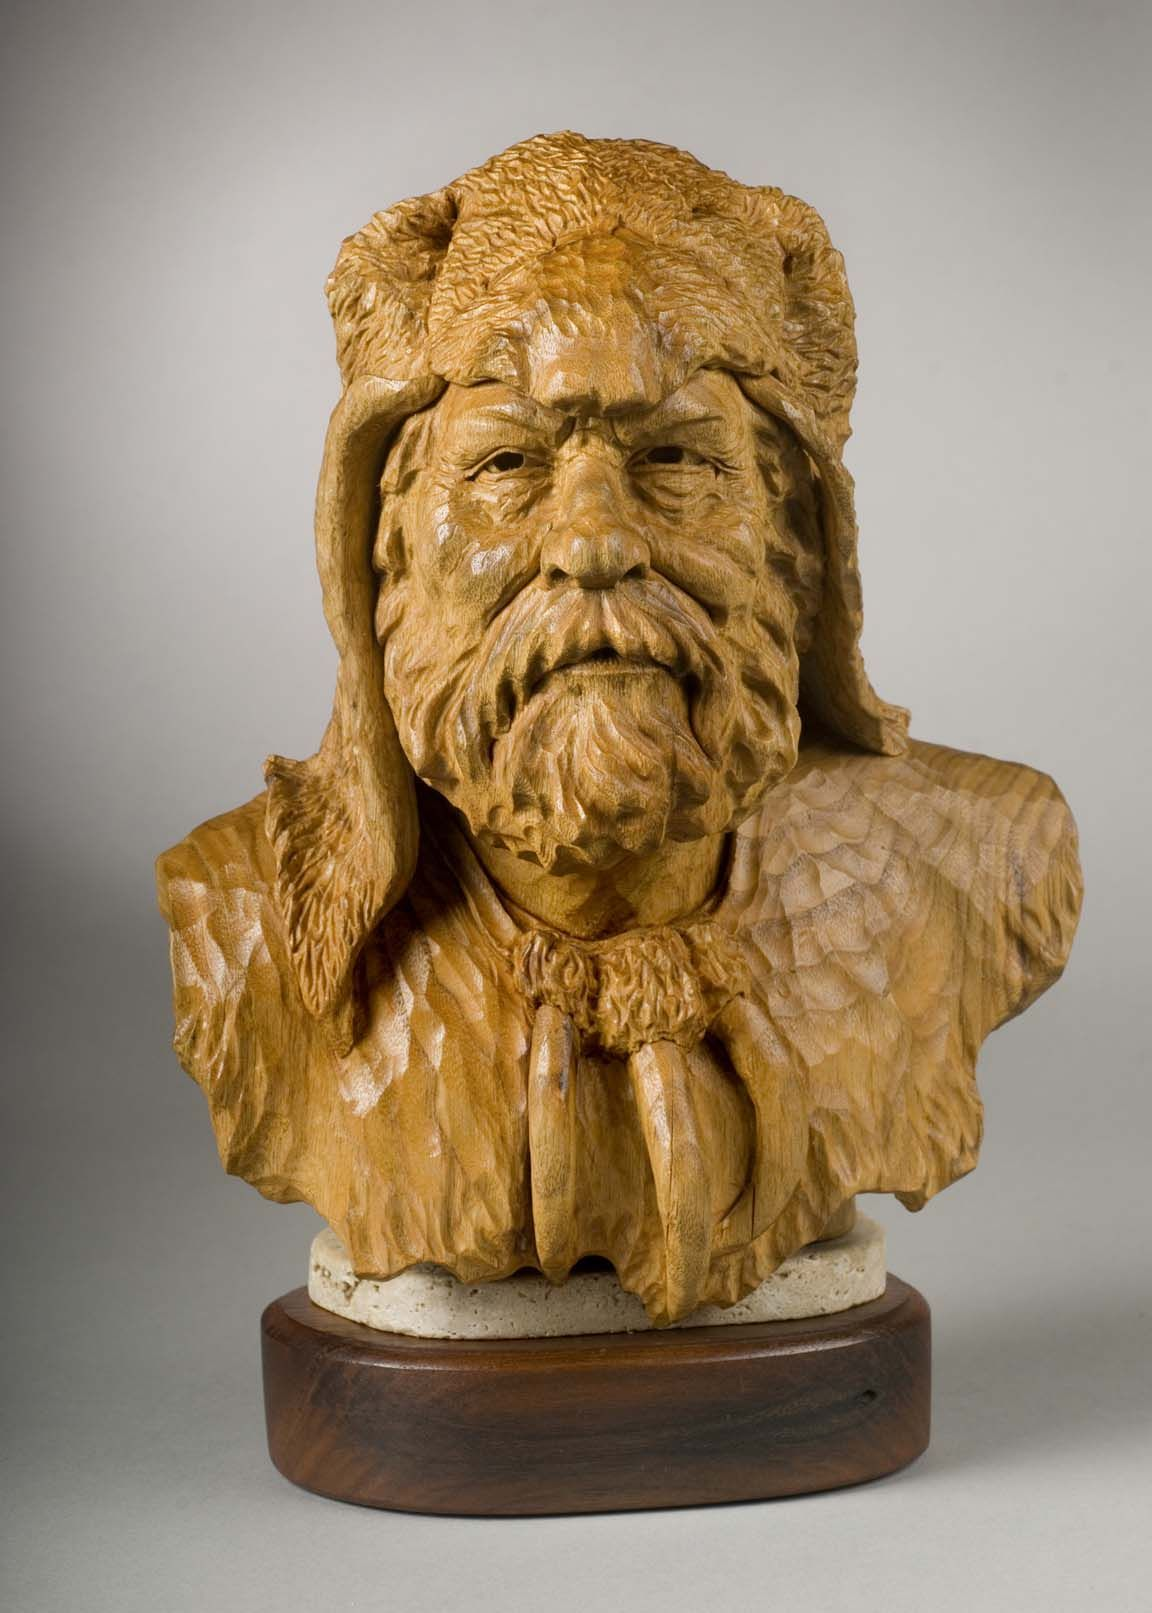 1000 Images About Bi Level Homes On Pinterest: 1000 Images About Woodcarvings On Pinterest Wood Picture